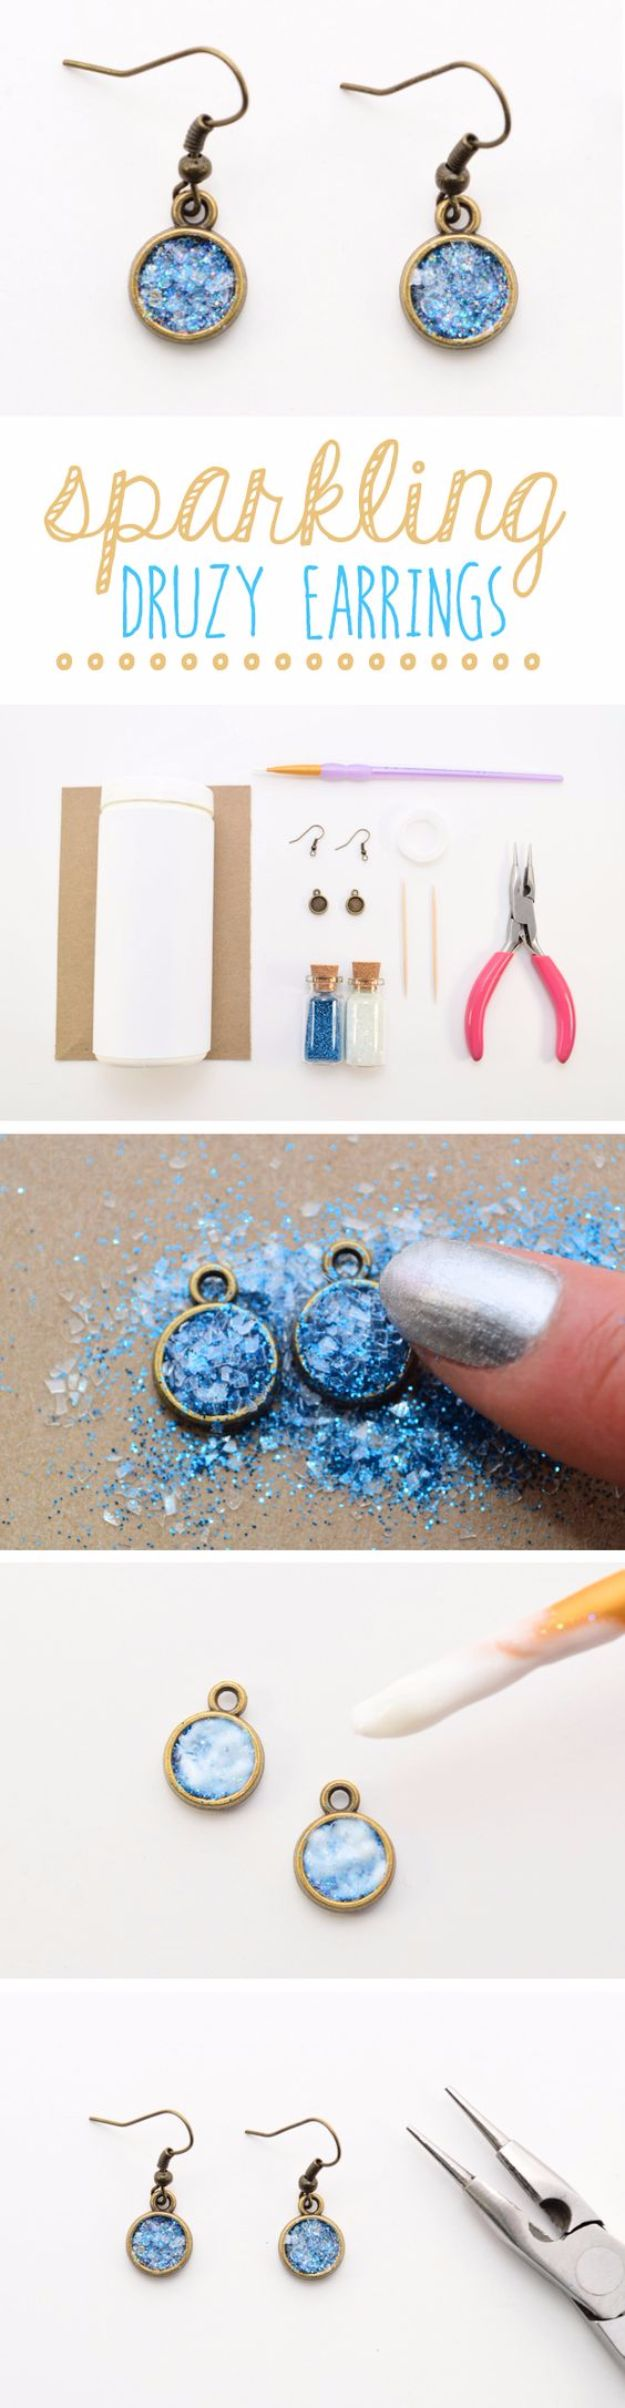 DIY Ideas WIth Glitter - Sparkling Druzy Earrings - Easy Crafts and Projects for Decoration, Gifts, and Bedroom Decor - How To Make Ombre, Mod Podge and Glitter Mason Jar Gift Ideas For Teens - Easy Clothes and Makeup Crafts For Teenagers #diyideas #glitter #crafts